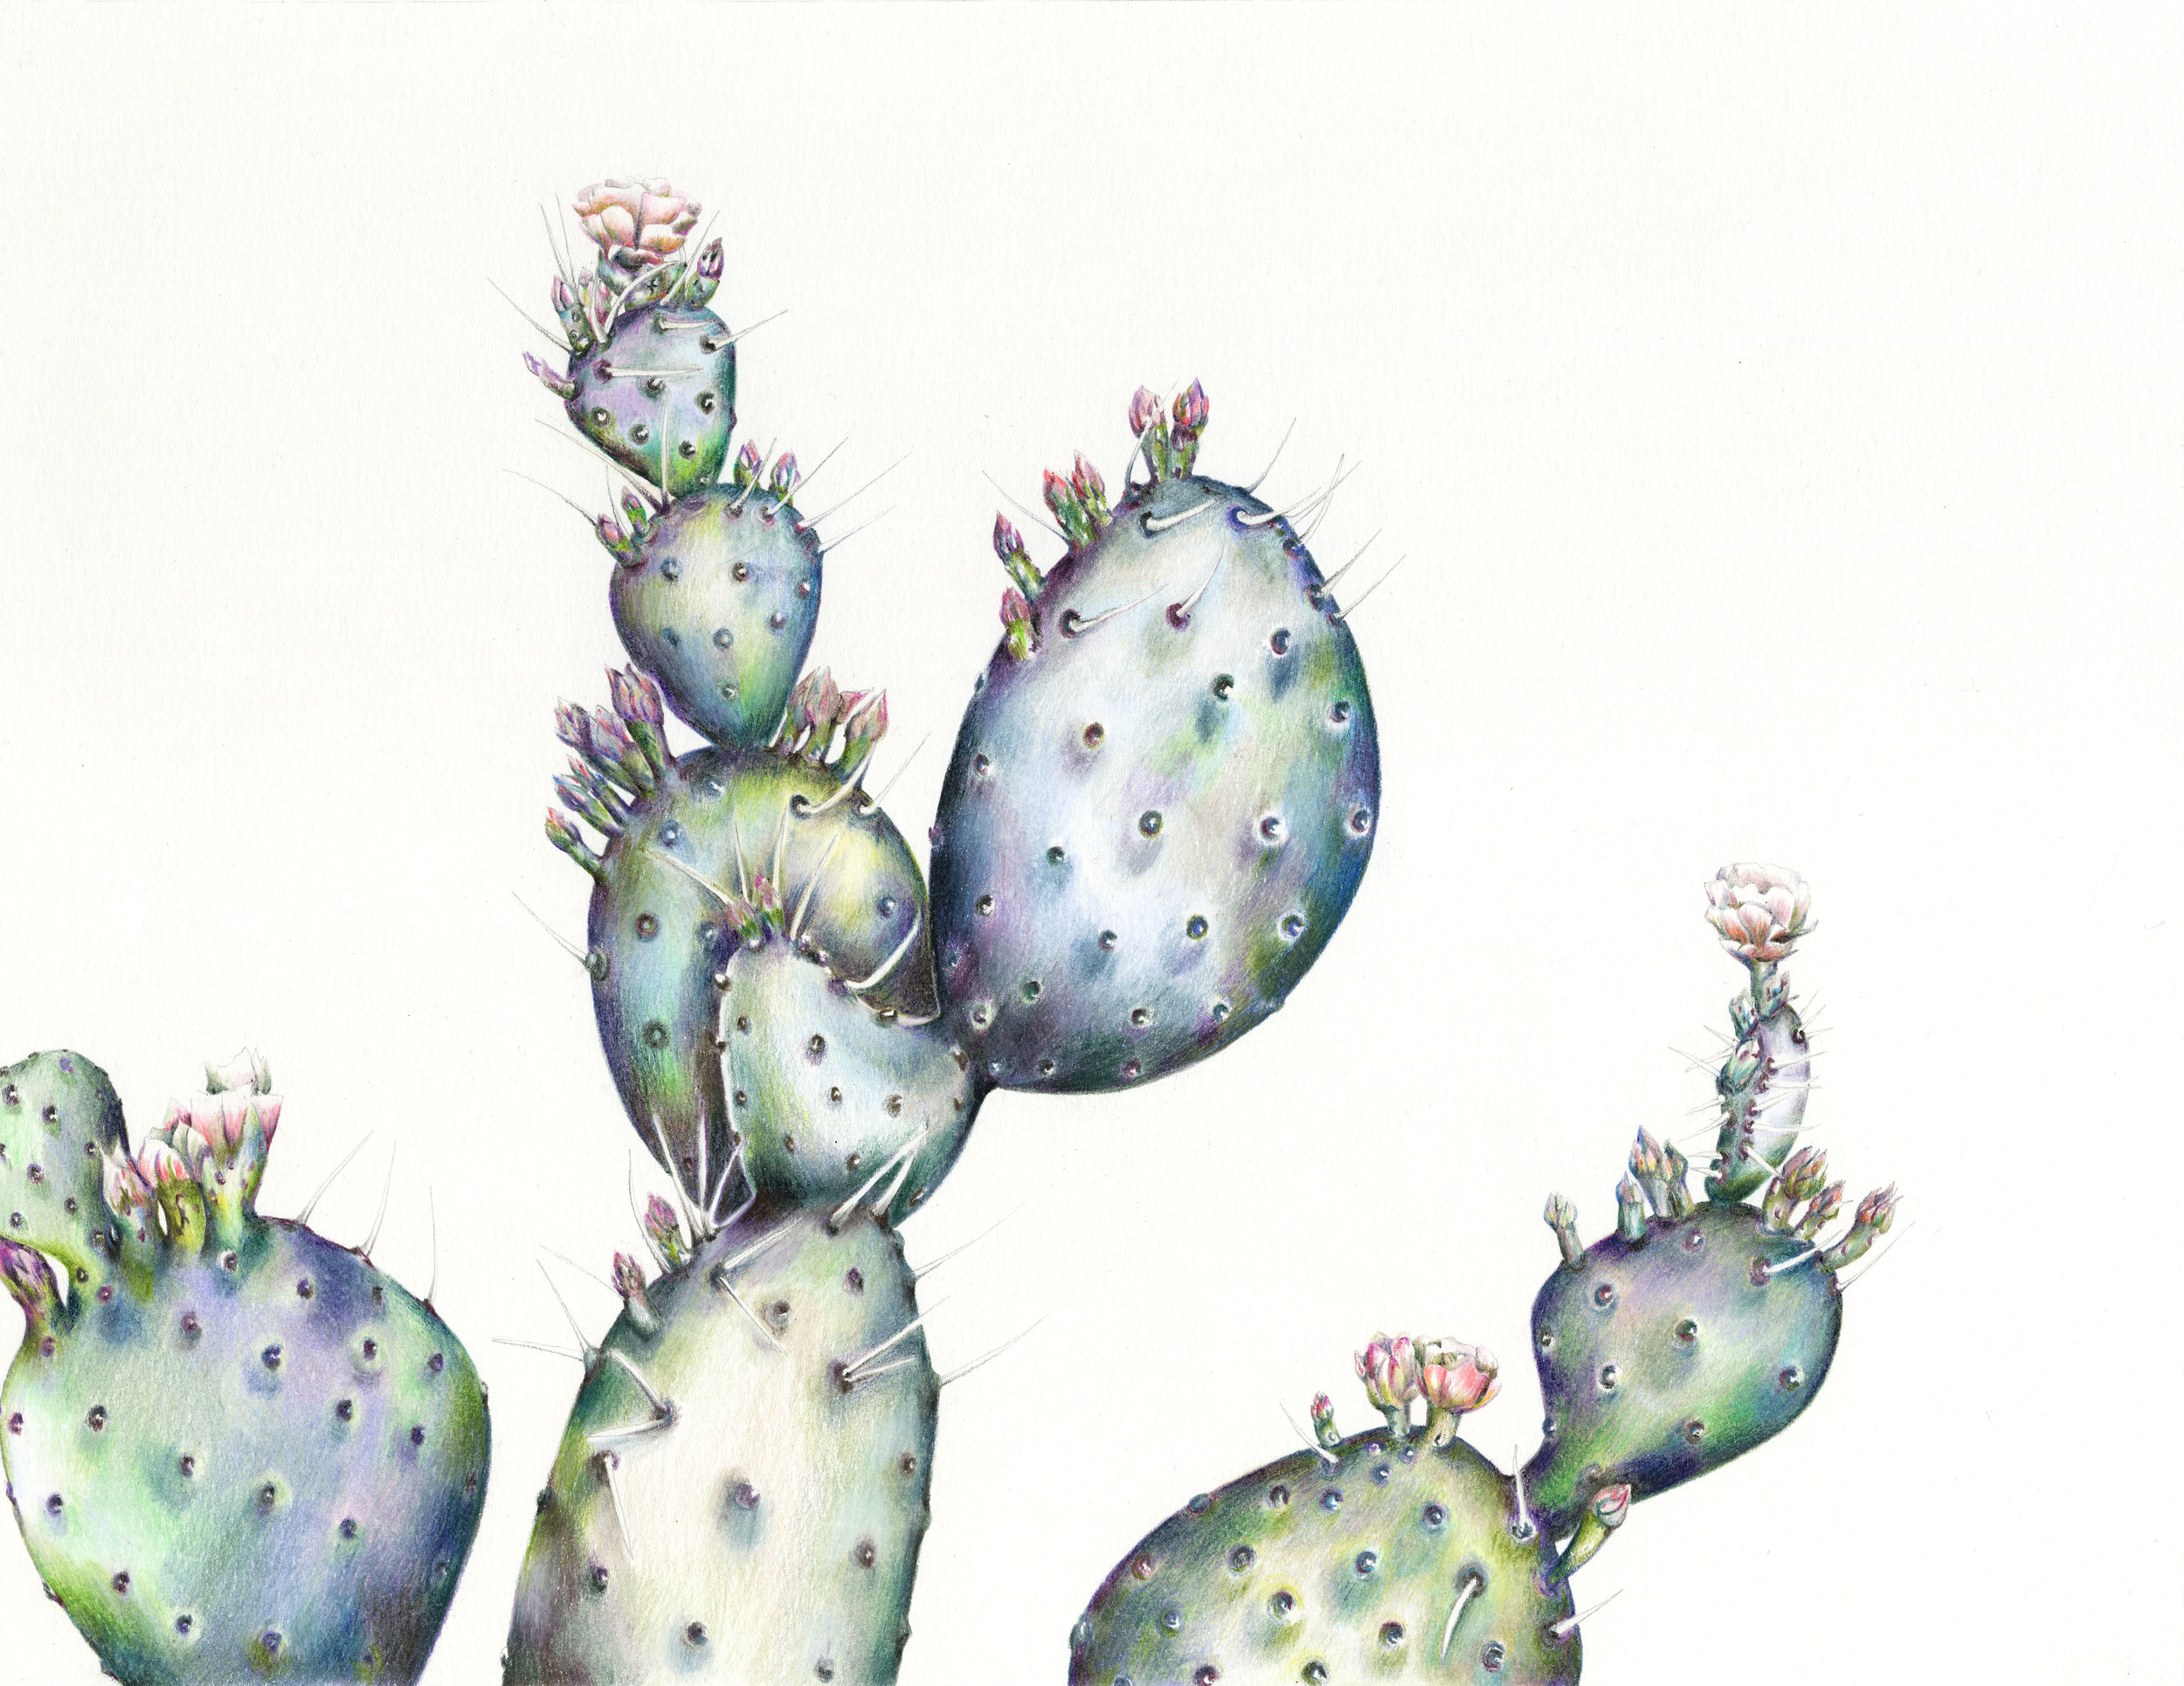 Charlotte's own take on the Jewel theme which is set to be hot this year, her Prickly Pear